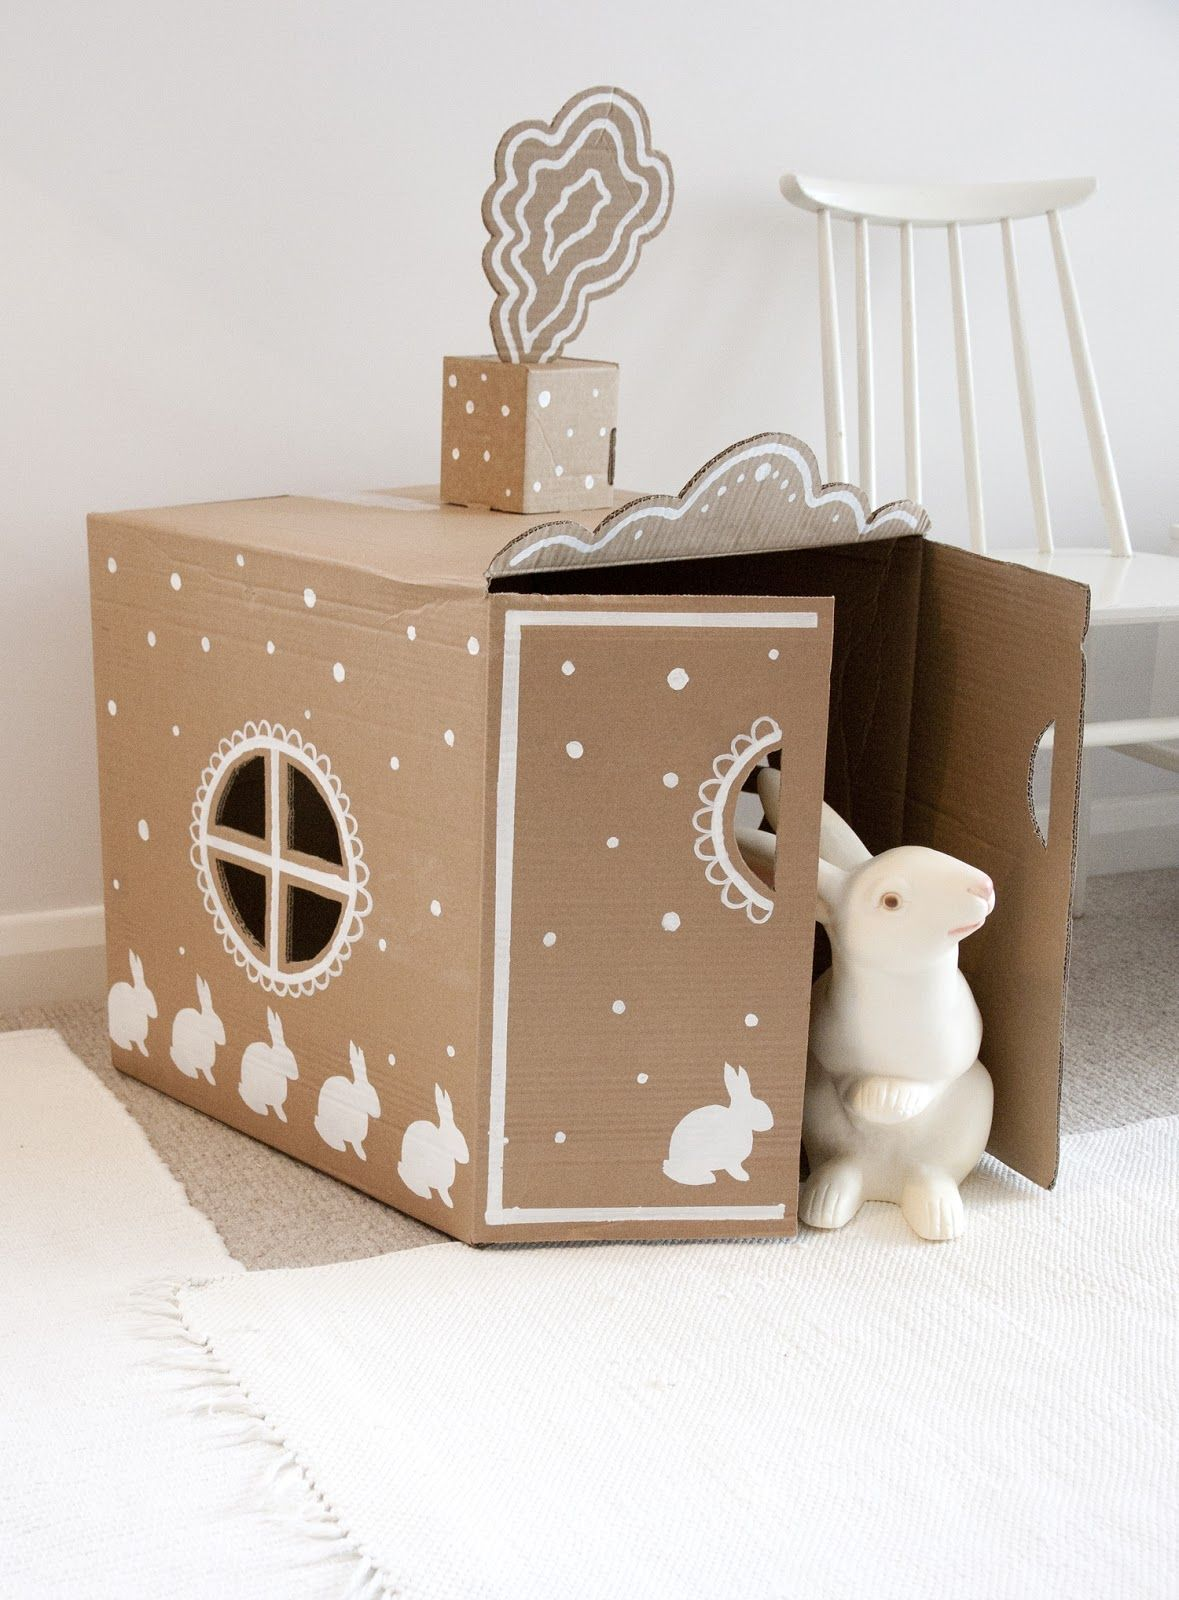 Recycled Cardboard Craft Kids Bunny Home Crafts Paper